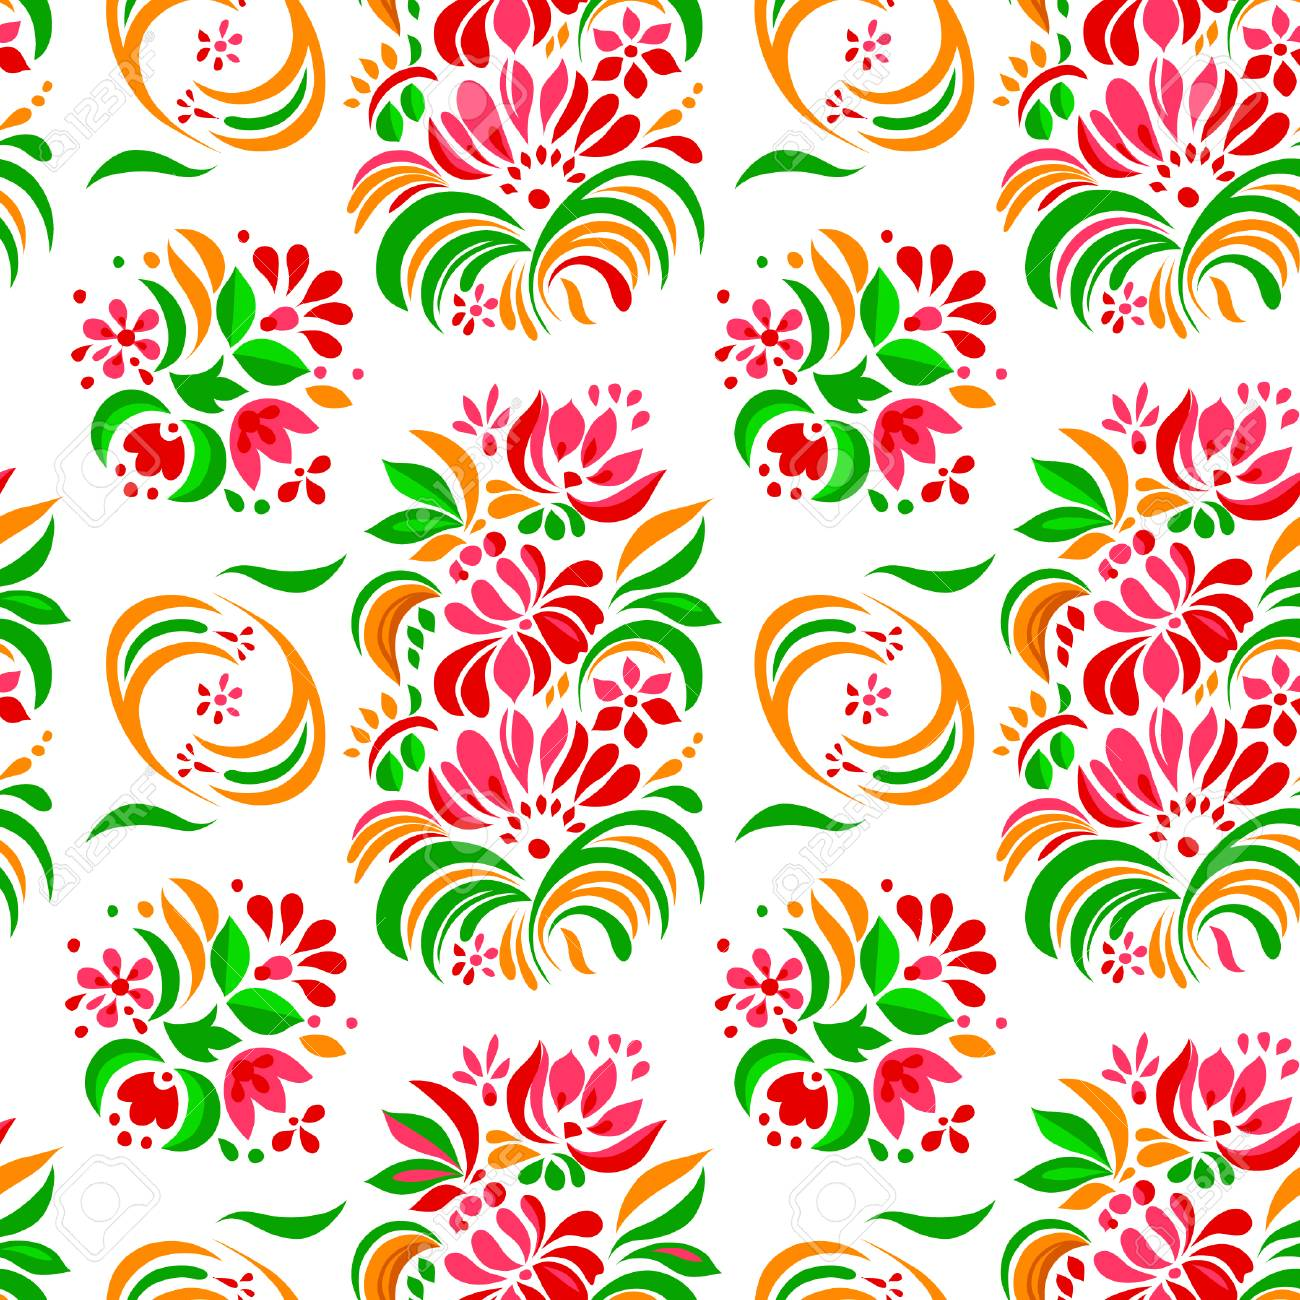 Vector Illustration Of Abstract Colorful Flowers Seamless Pattern